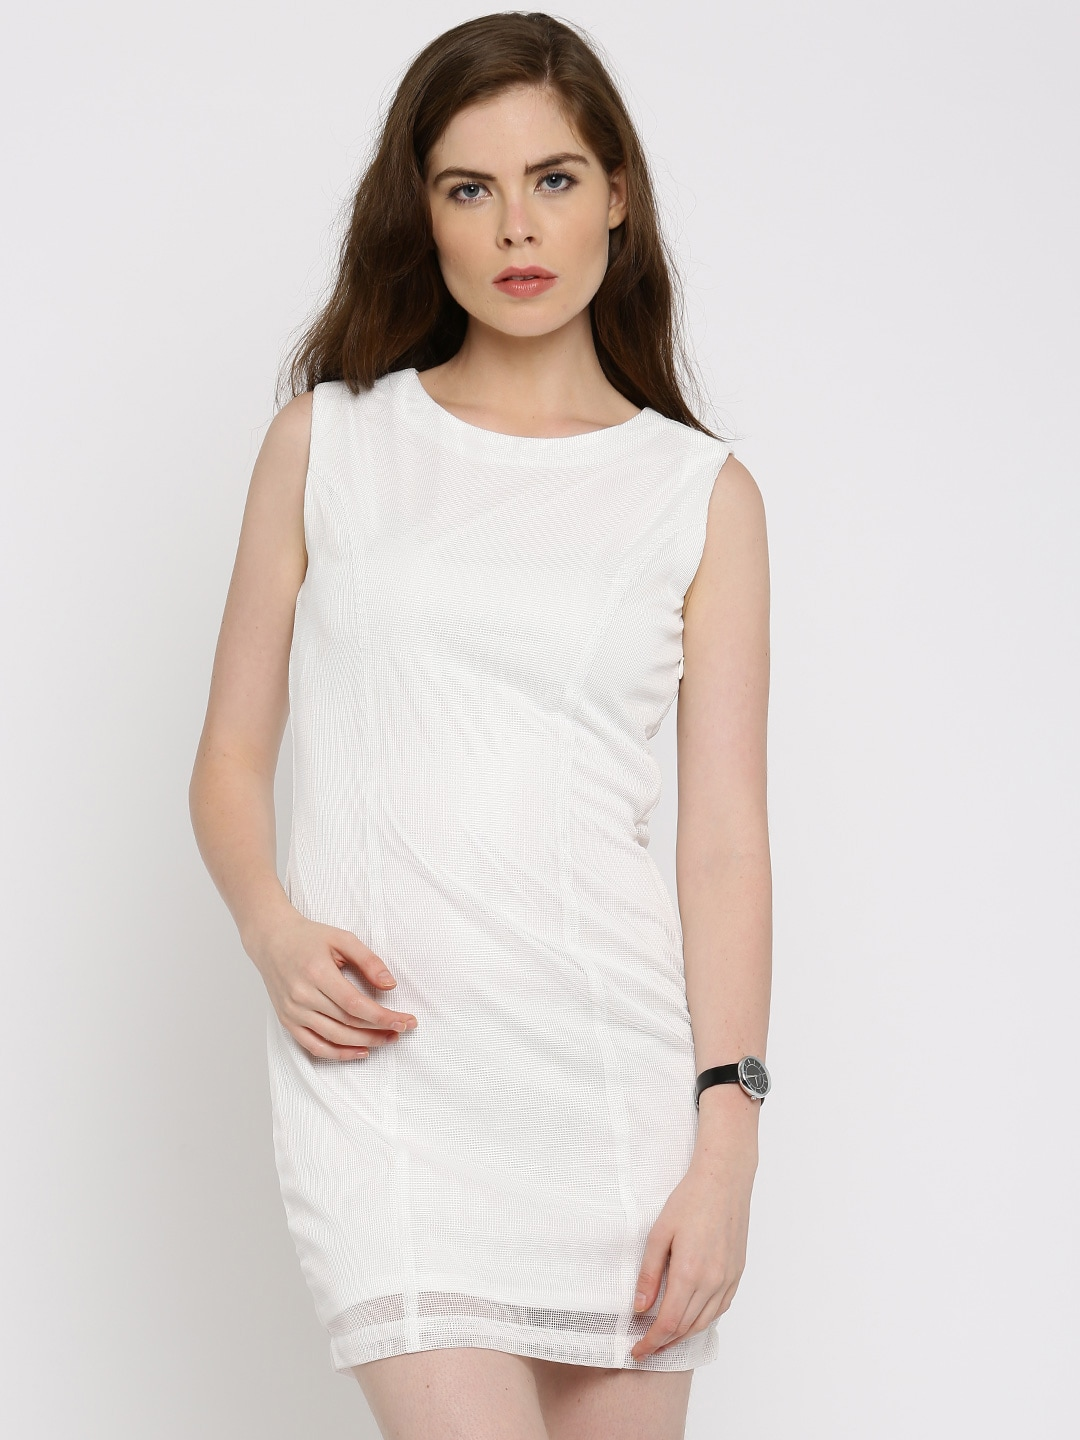 Allen Solly Woman White Solid Net Bodycon Dress image